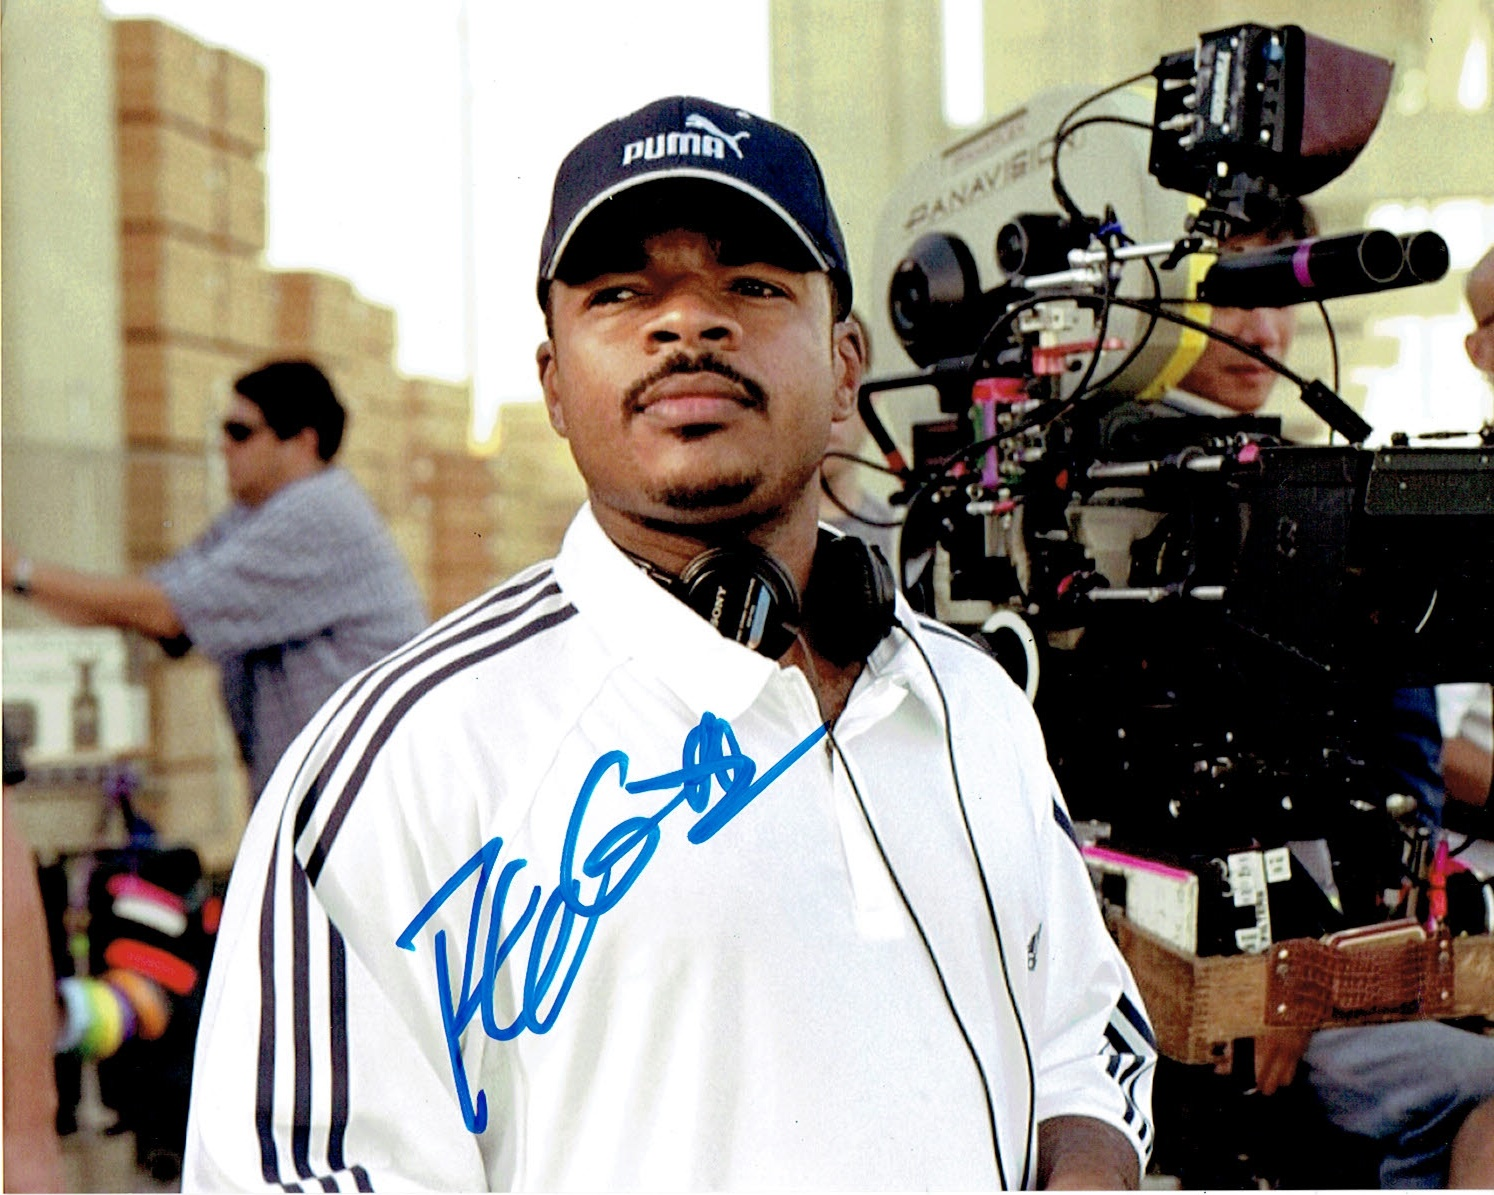 F. Gary Gray Signed Photo